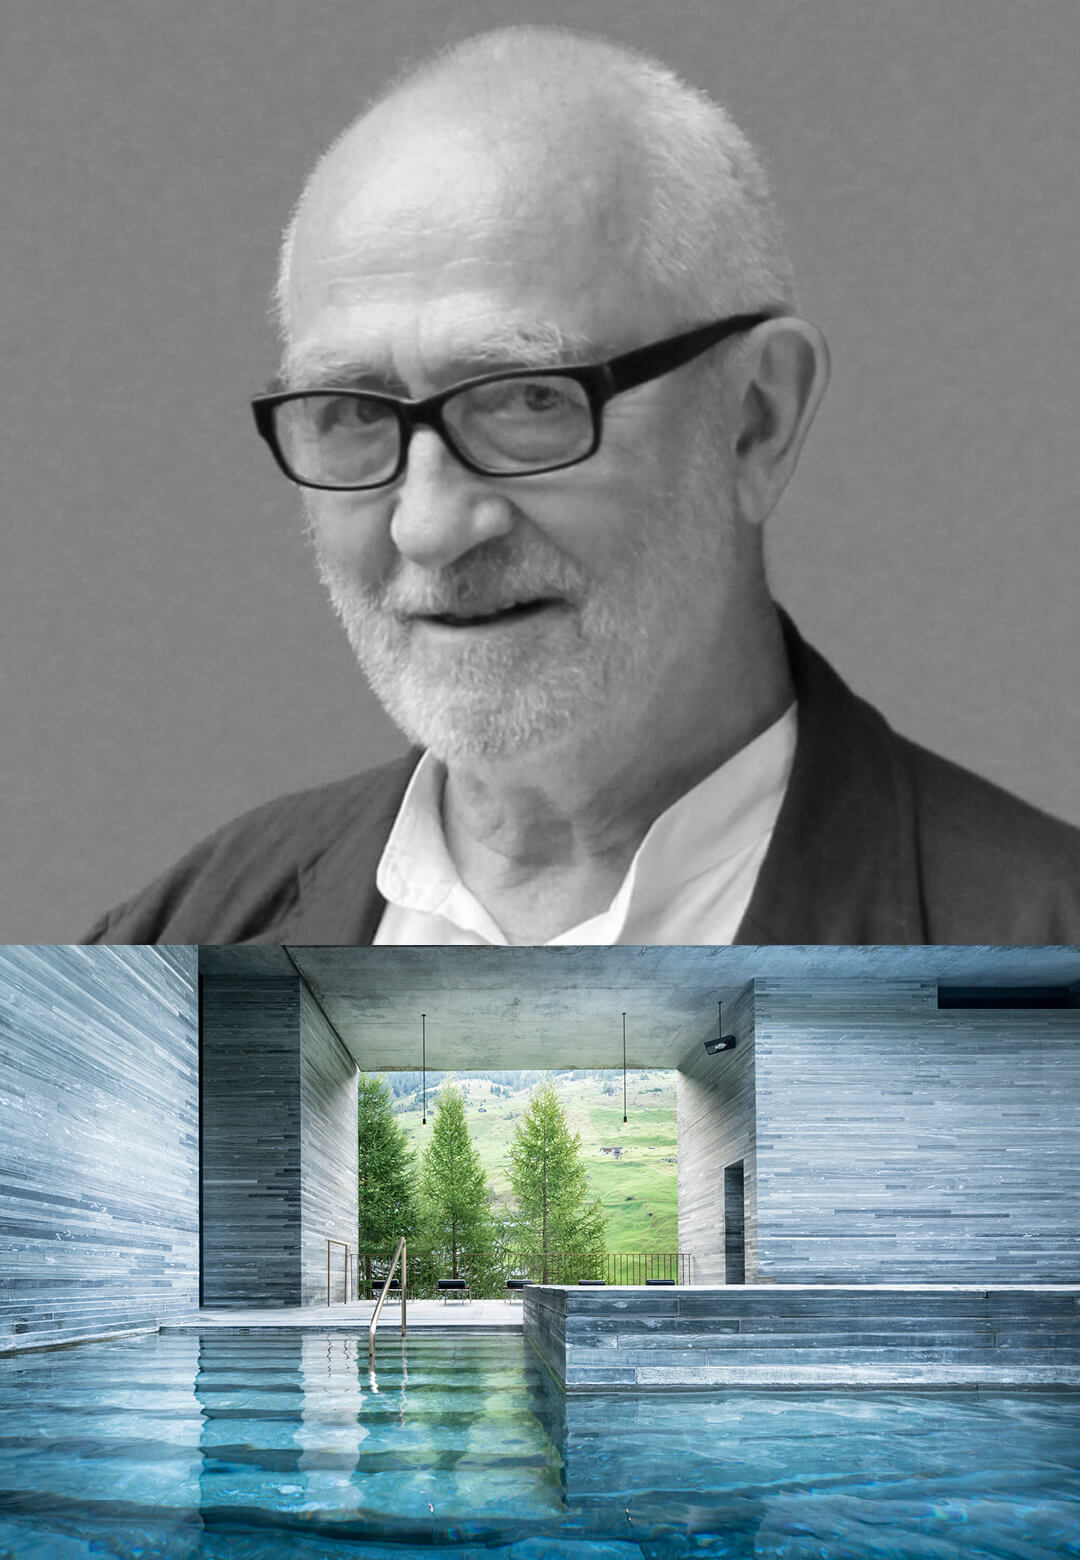 Therme Spa at 7132 Hotel Vals designed by Swiss architect Peter Zumthor | Peter Zumthor | STIRworld